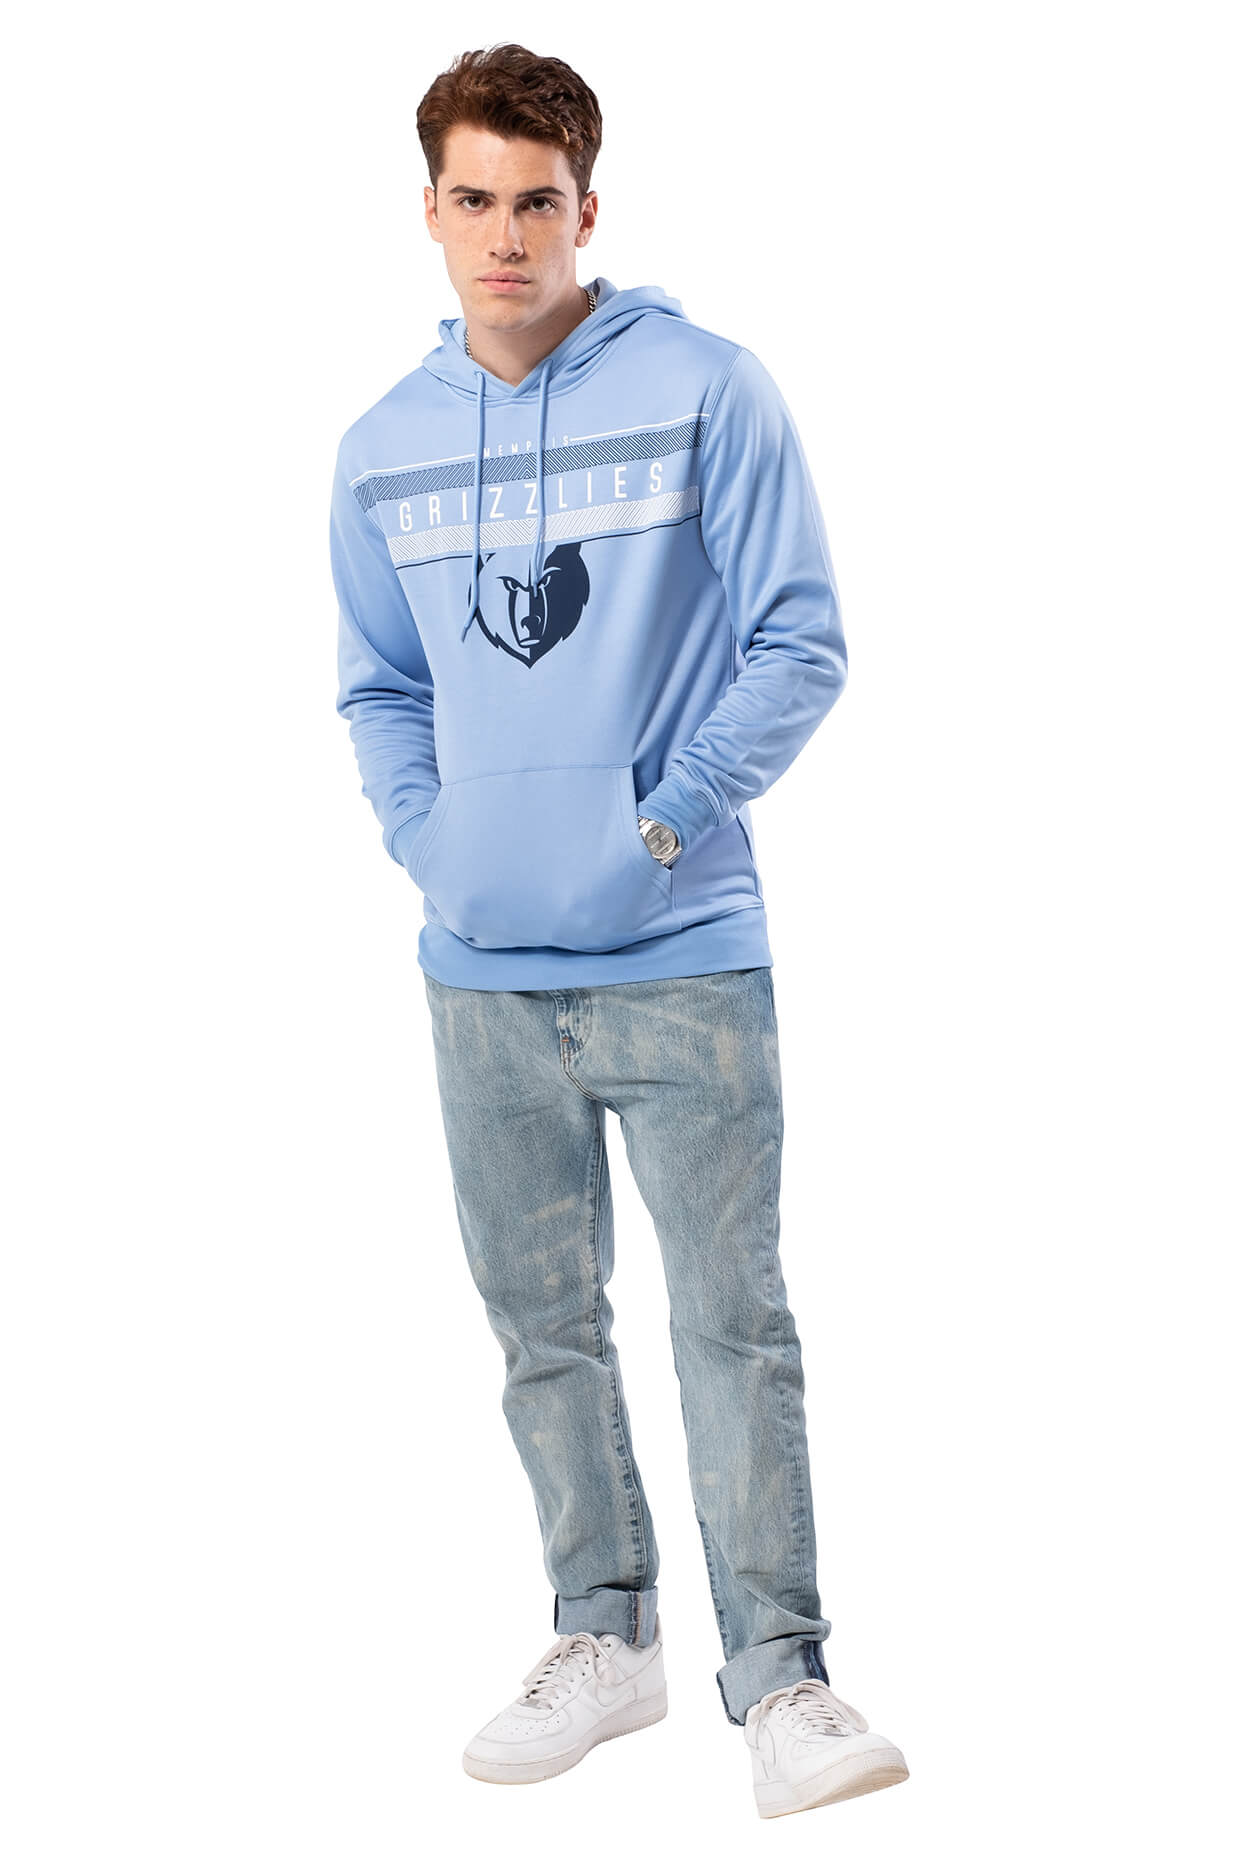 NBA Memphis Grizzlies Men's Fleece Hoodie Midtown|Memphis Grizzlies